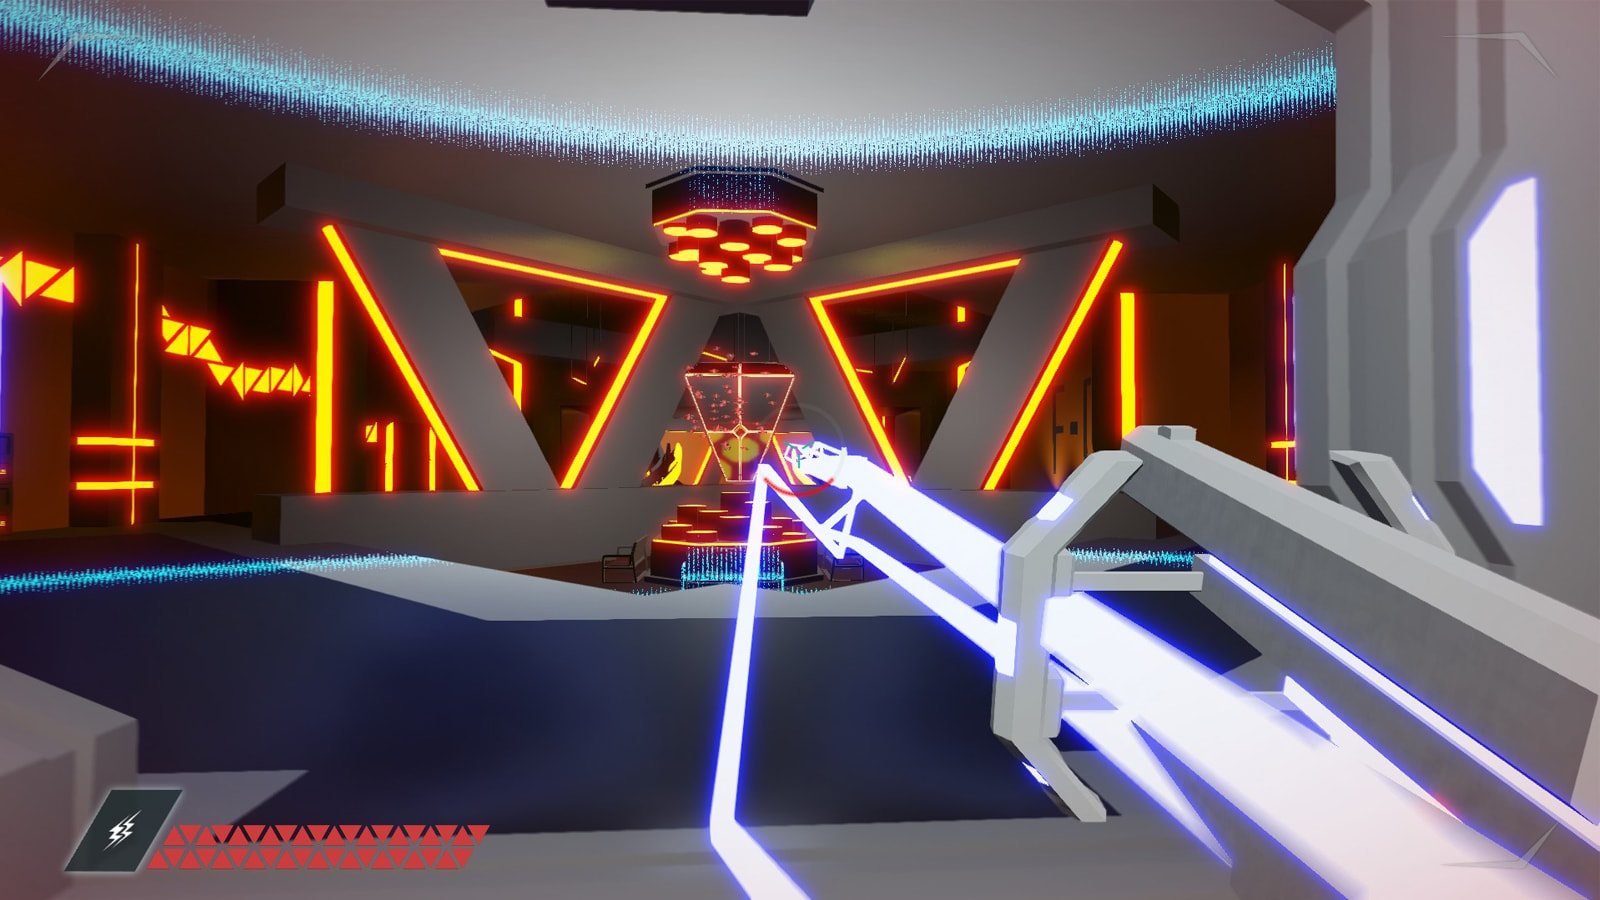 The player shoots a blue beam from their grey gun at a triangular opening in a futuristic interior.